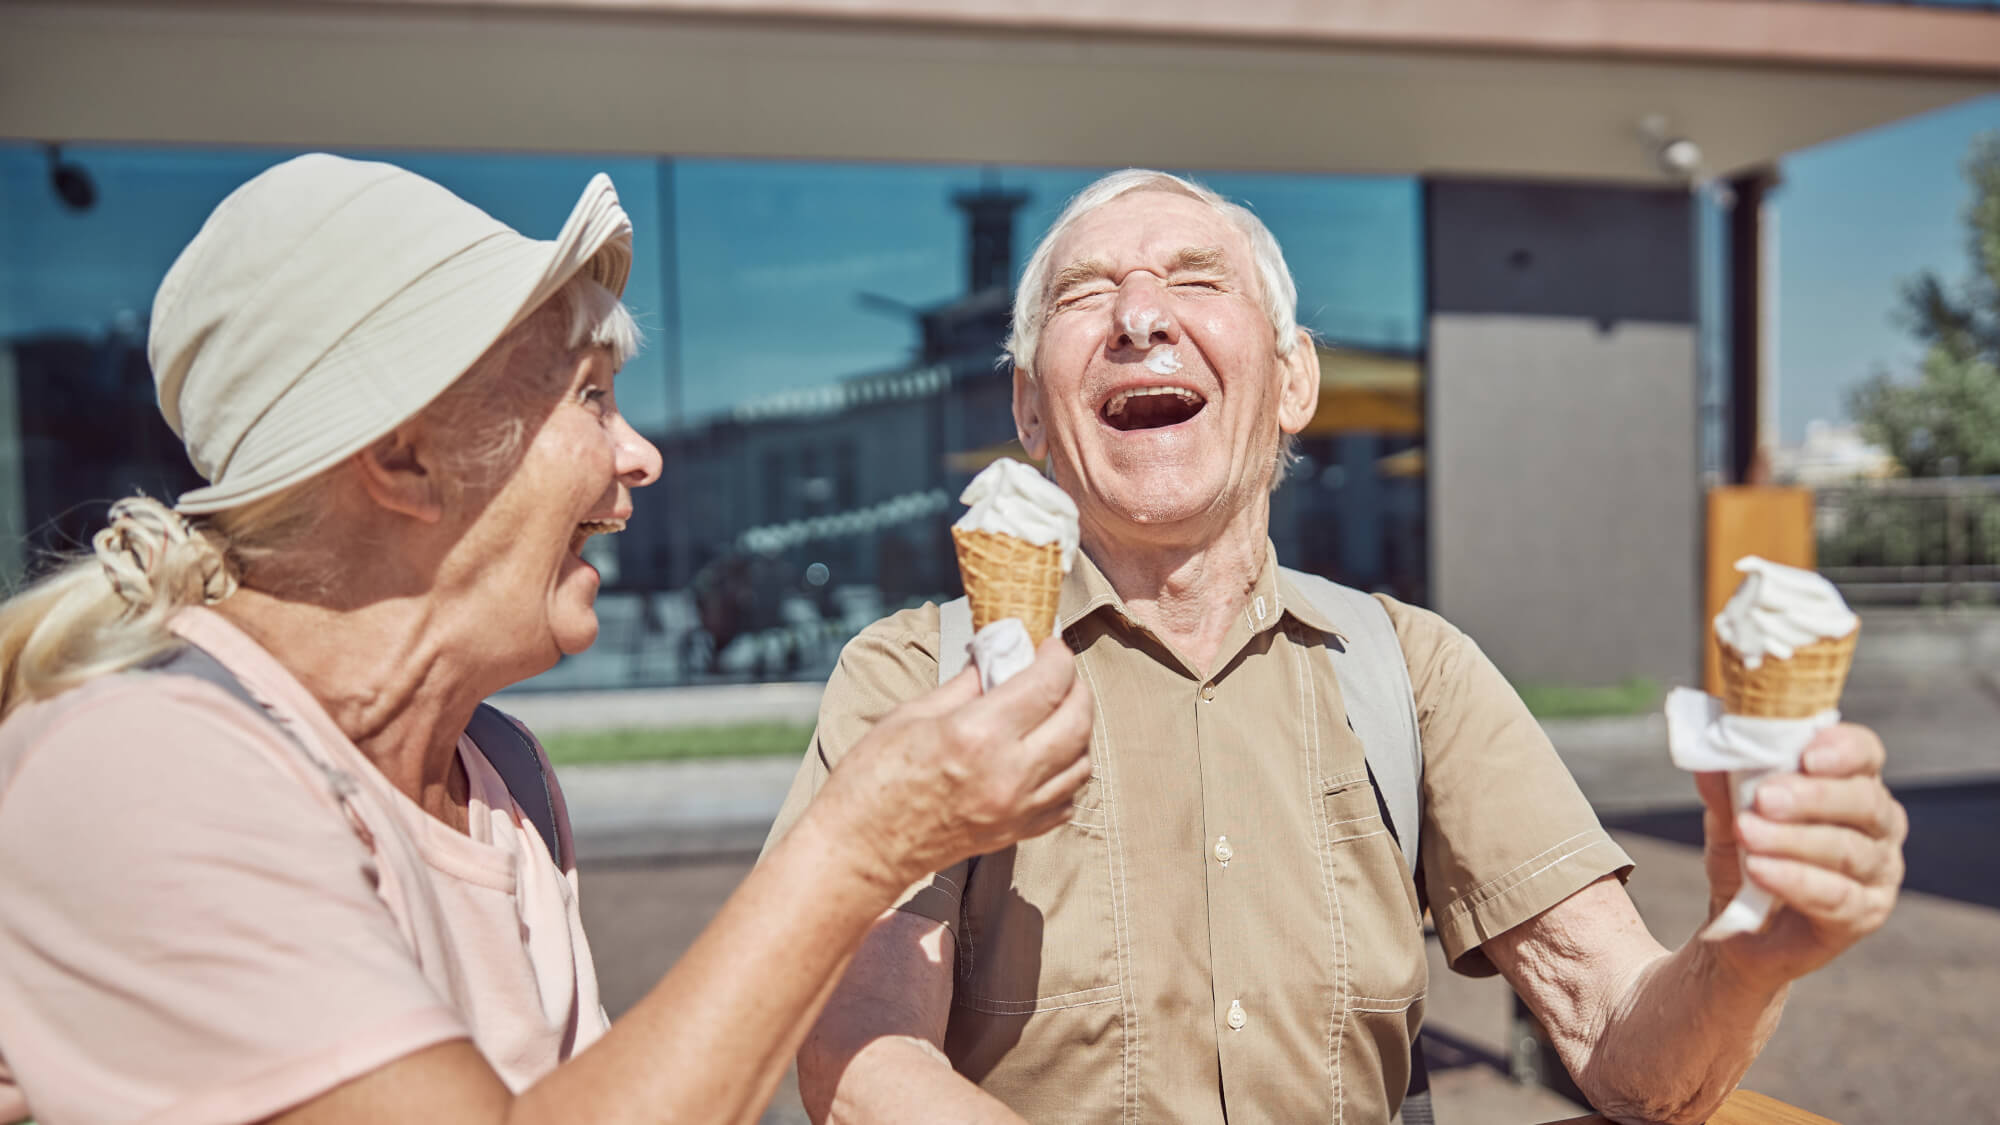 Cheerful married elderly couple with vanilla ice cream waffle cones laughing heartily at the table